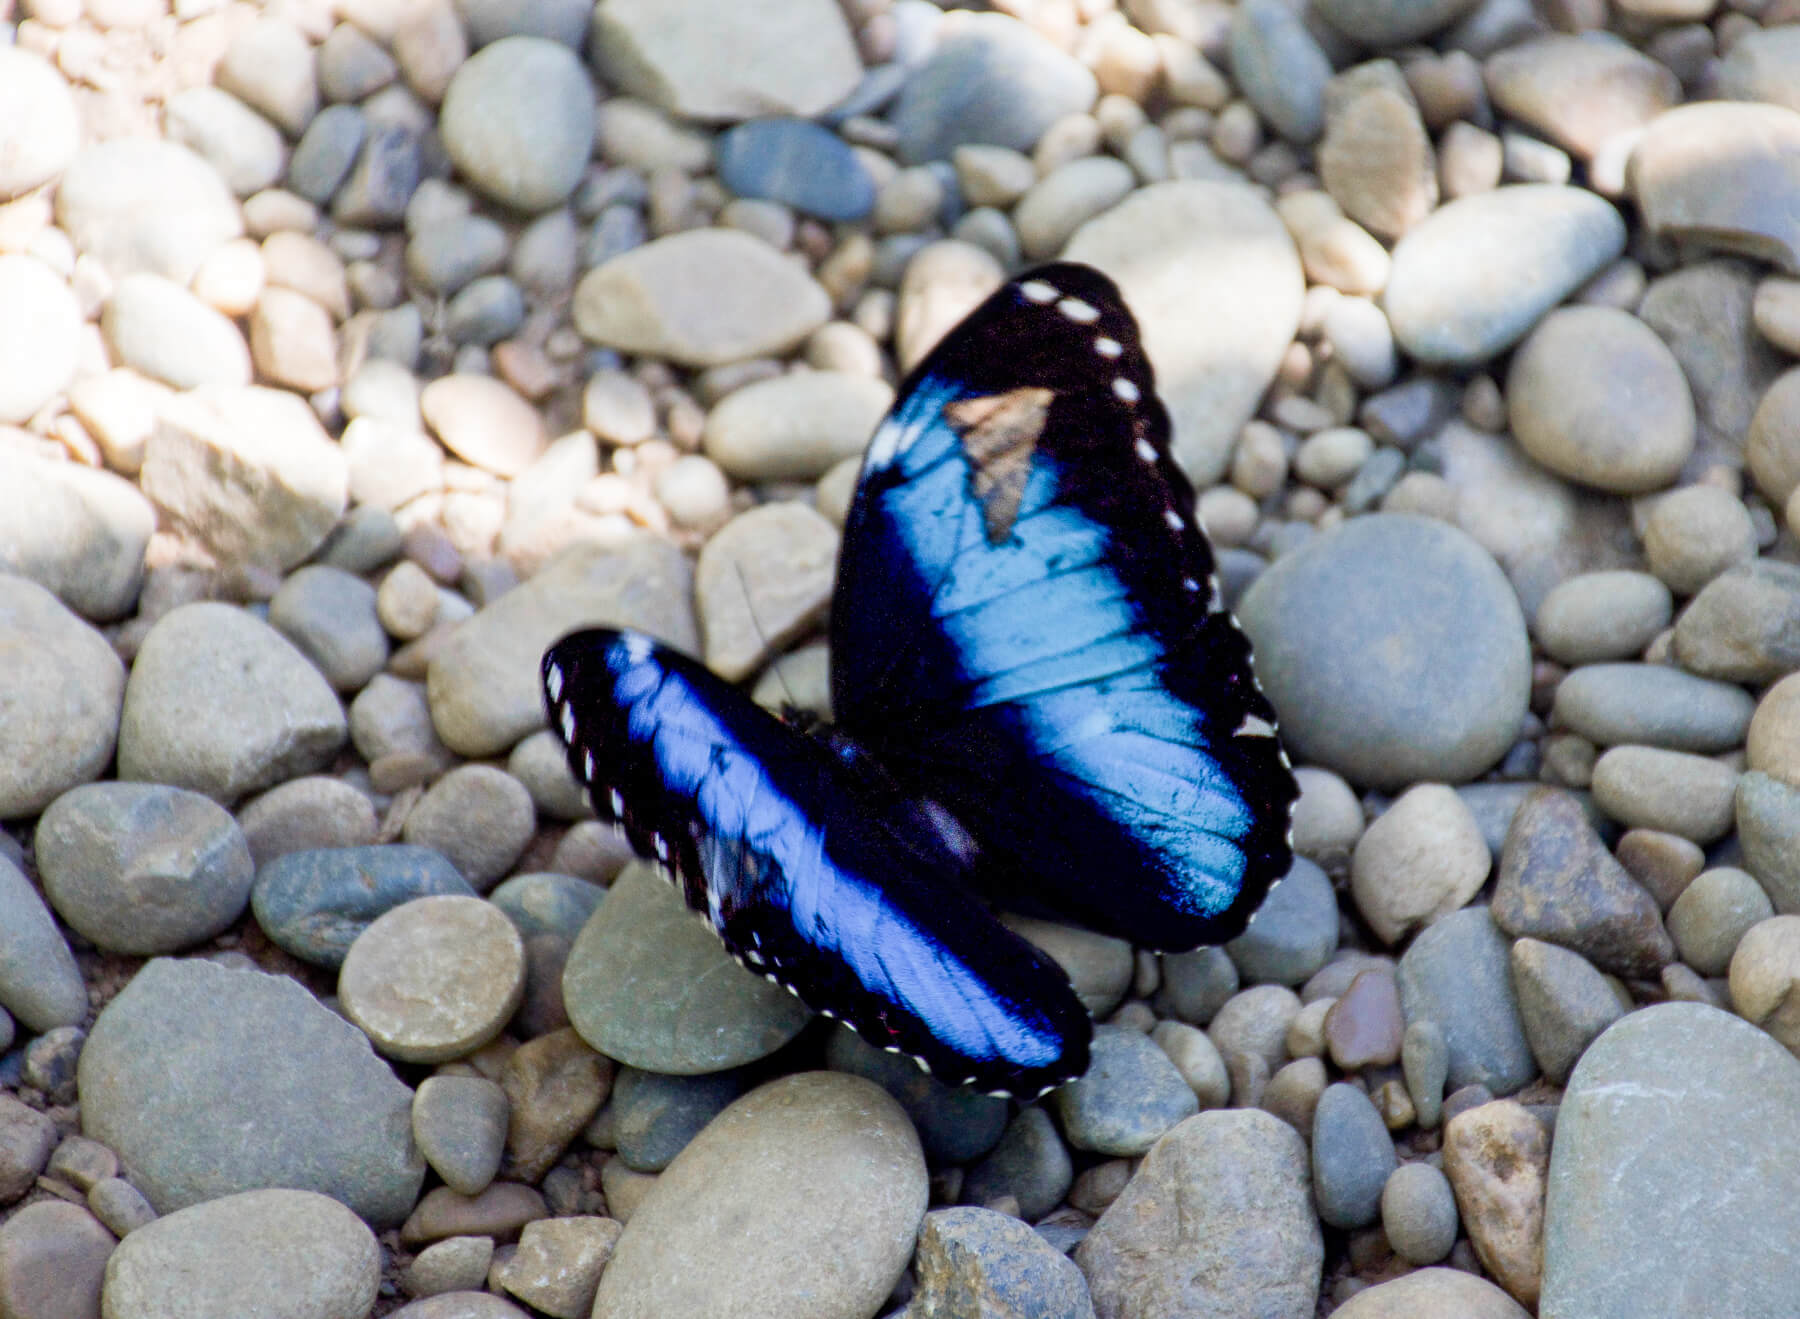 A blue butterfly in the Amazon Rainforest